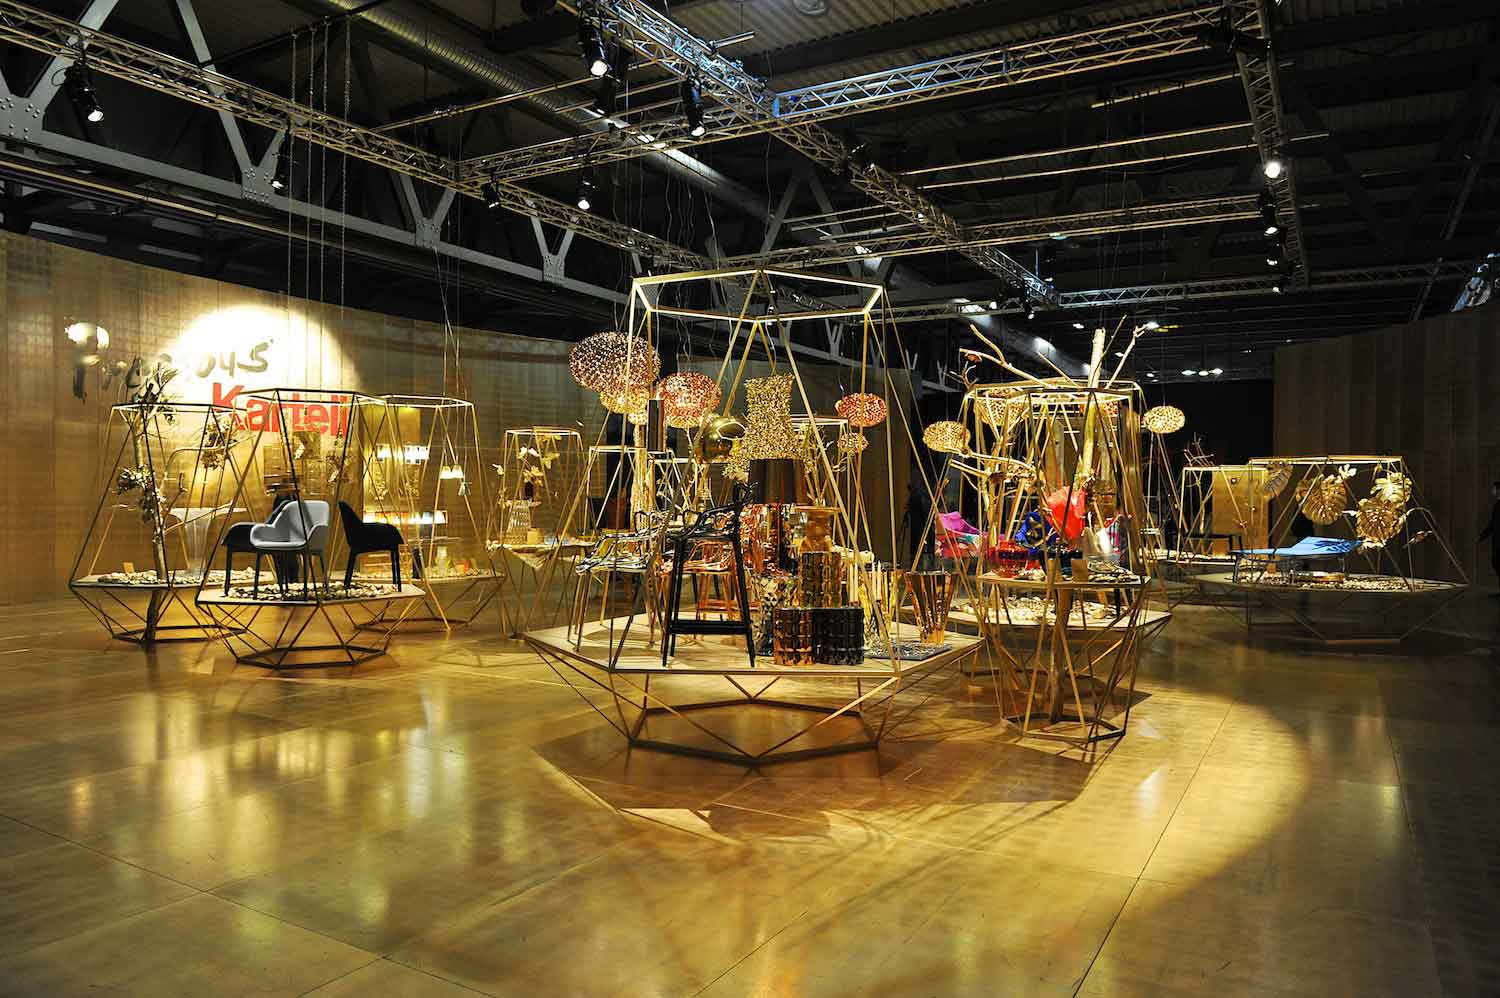 Salone del mobile milan international furniture fair - Fiera del mobile bologna ...